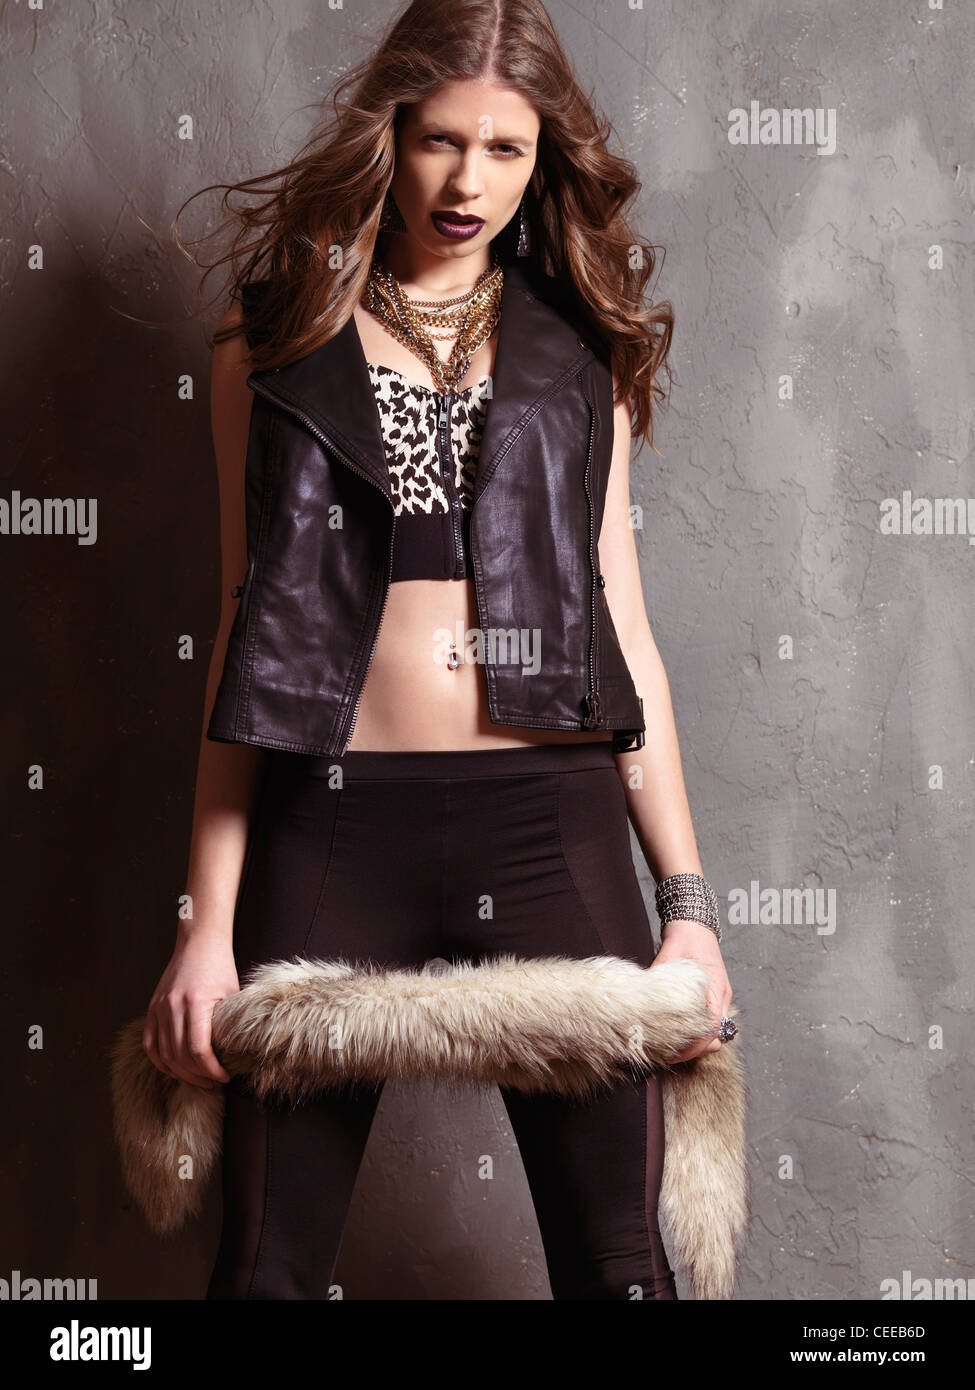 Fashion photo of a young woman wearing grunge fashion style clothing of 90s - Stock Image